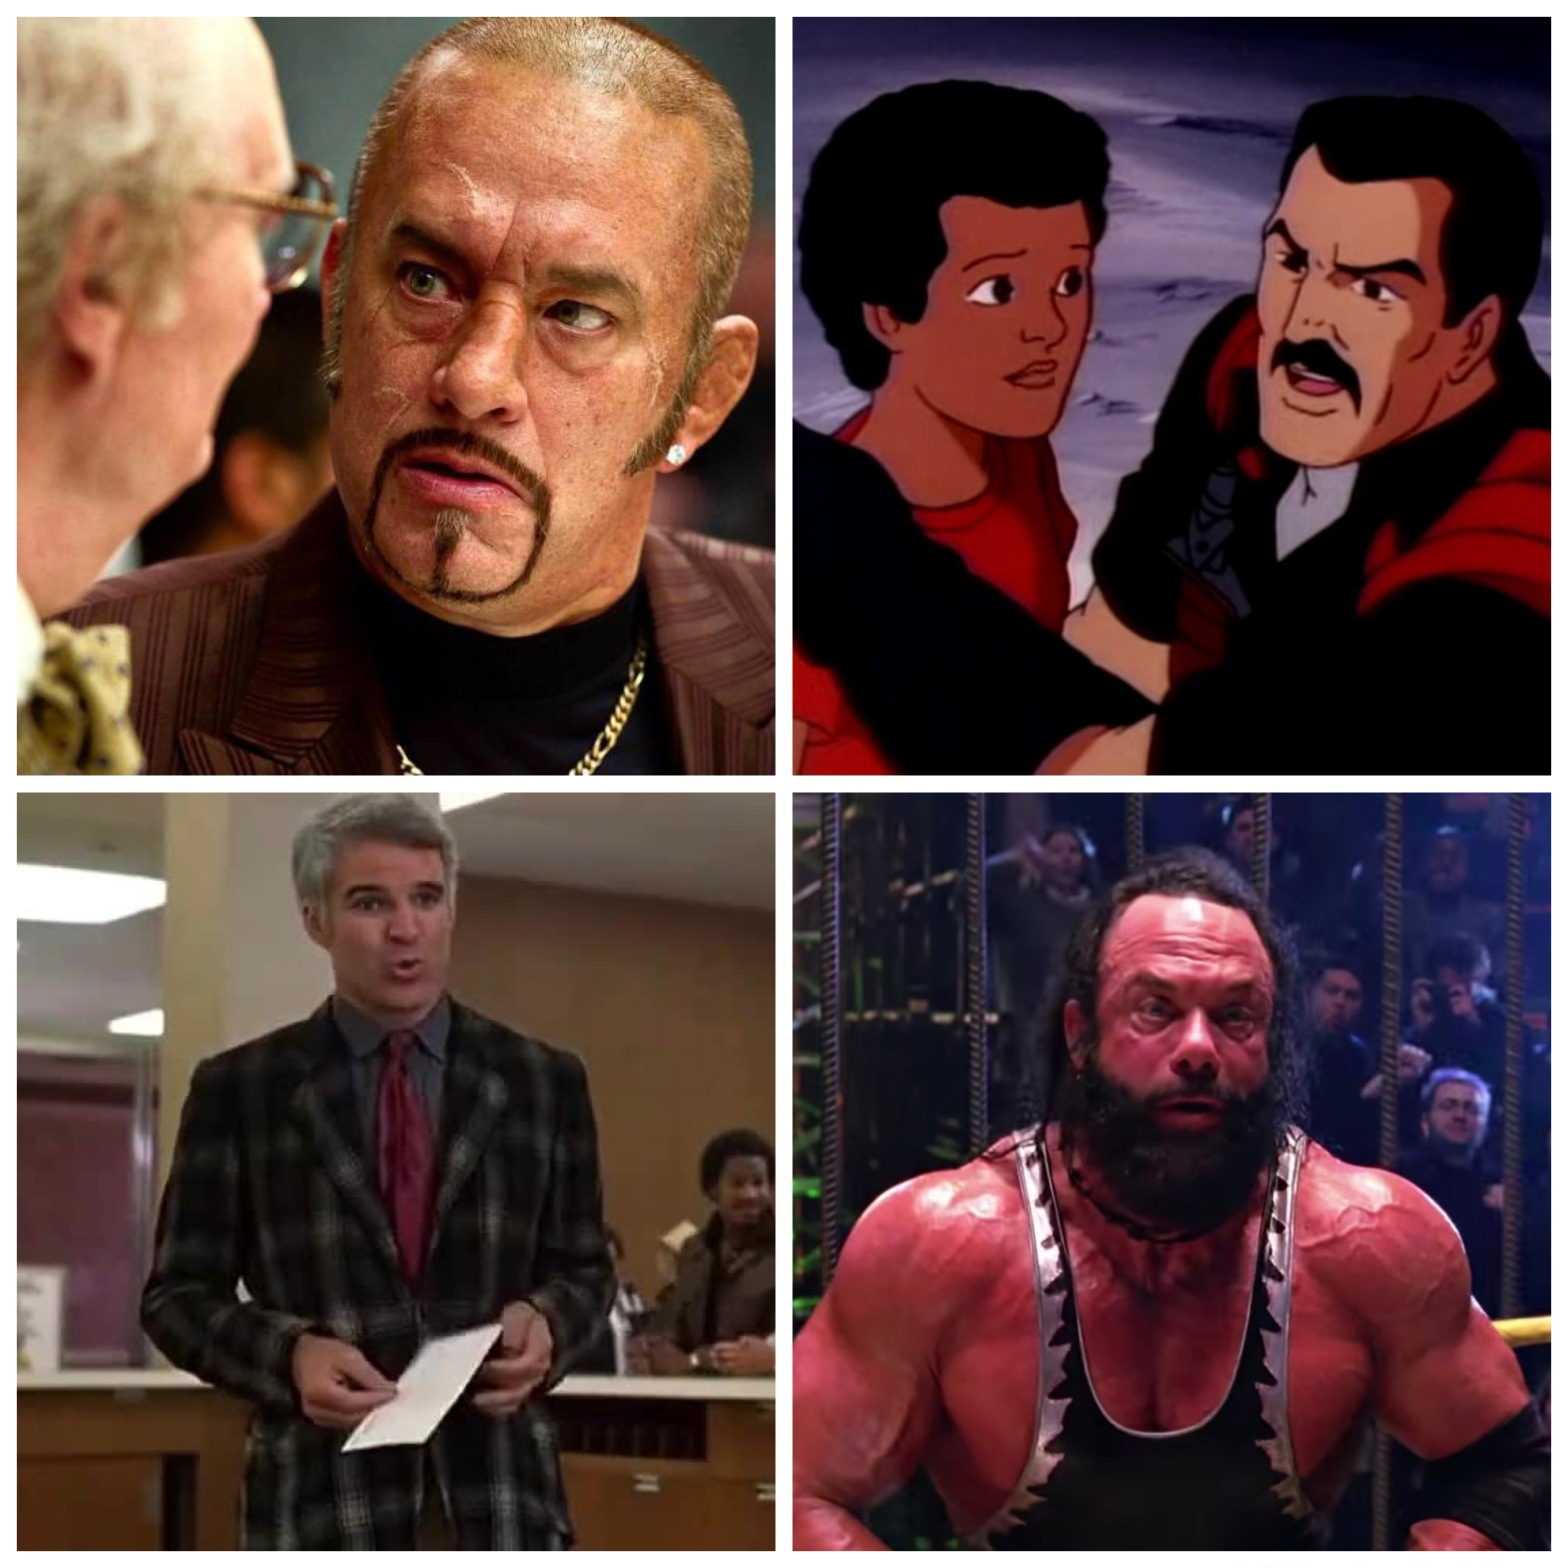 Tom Hanks in Cloud Atlas, Help Computer from Fensler Films' G.I. Joe parodies, Steve Martin from The Jerk, and Macho Man Randy Savage from Sam Raimi's Spider-Man.